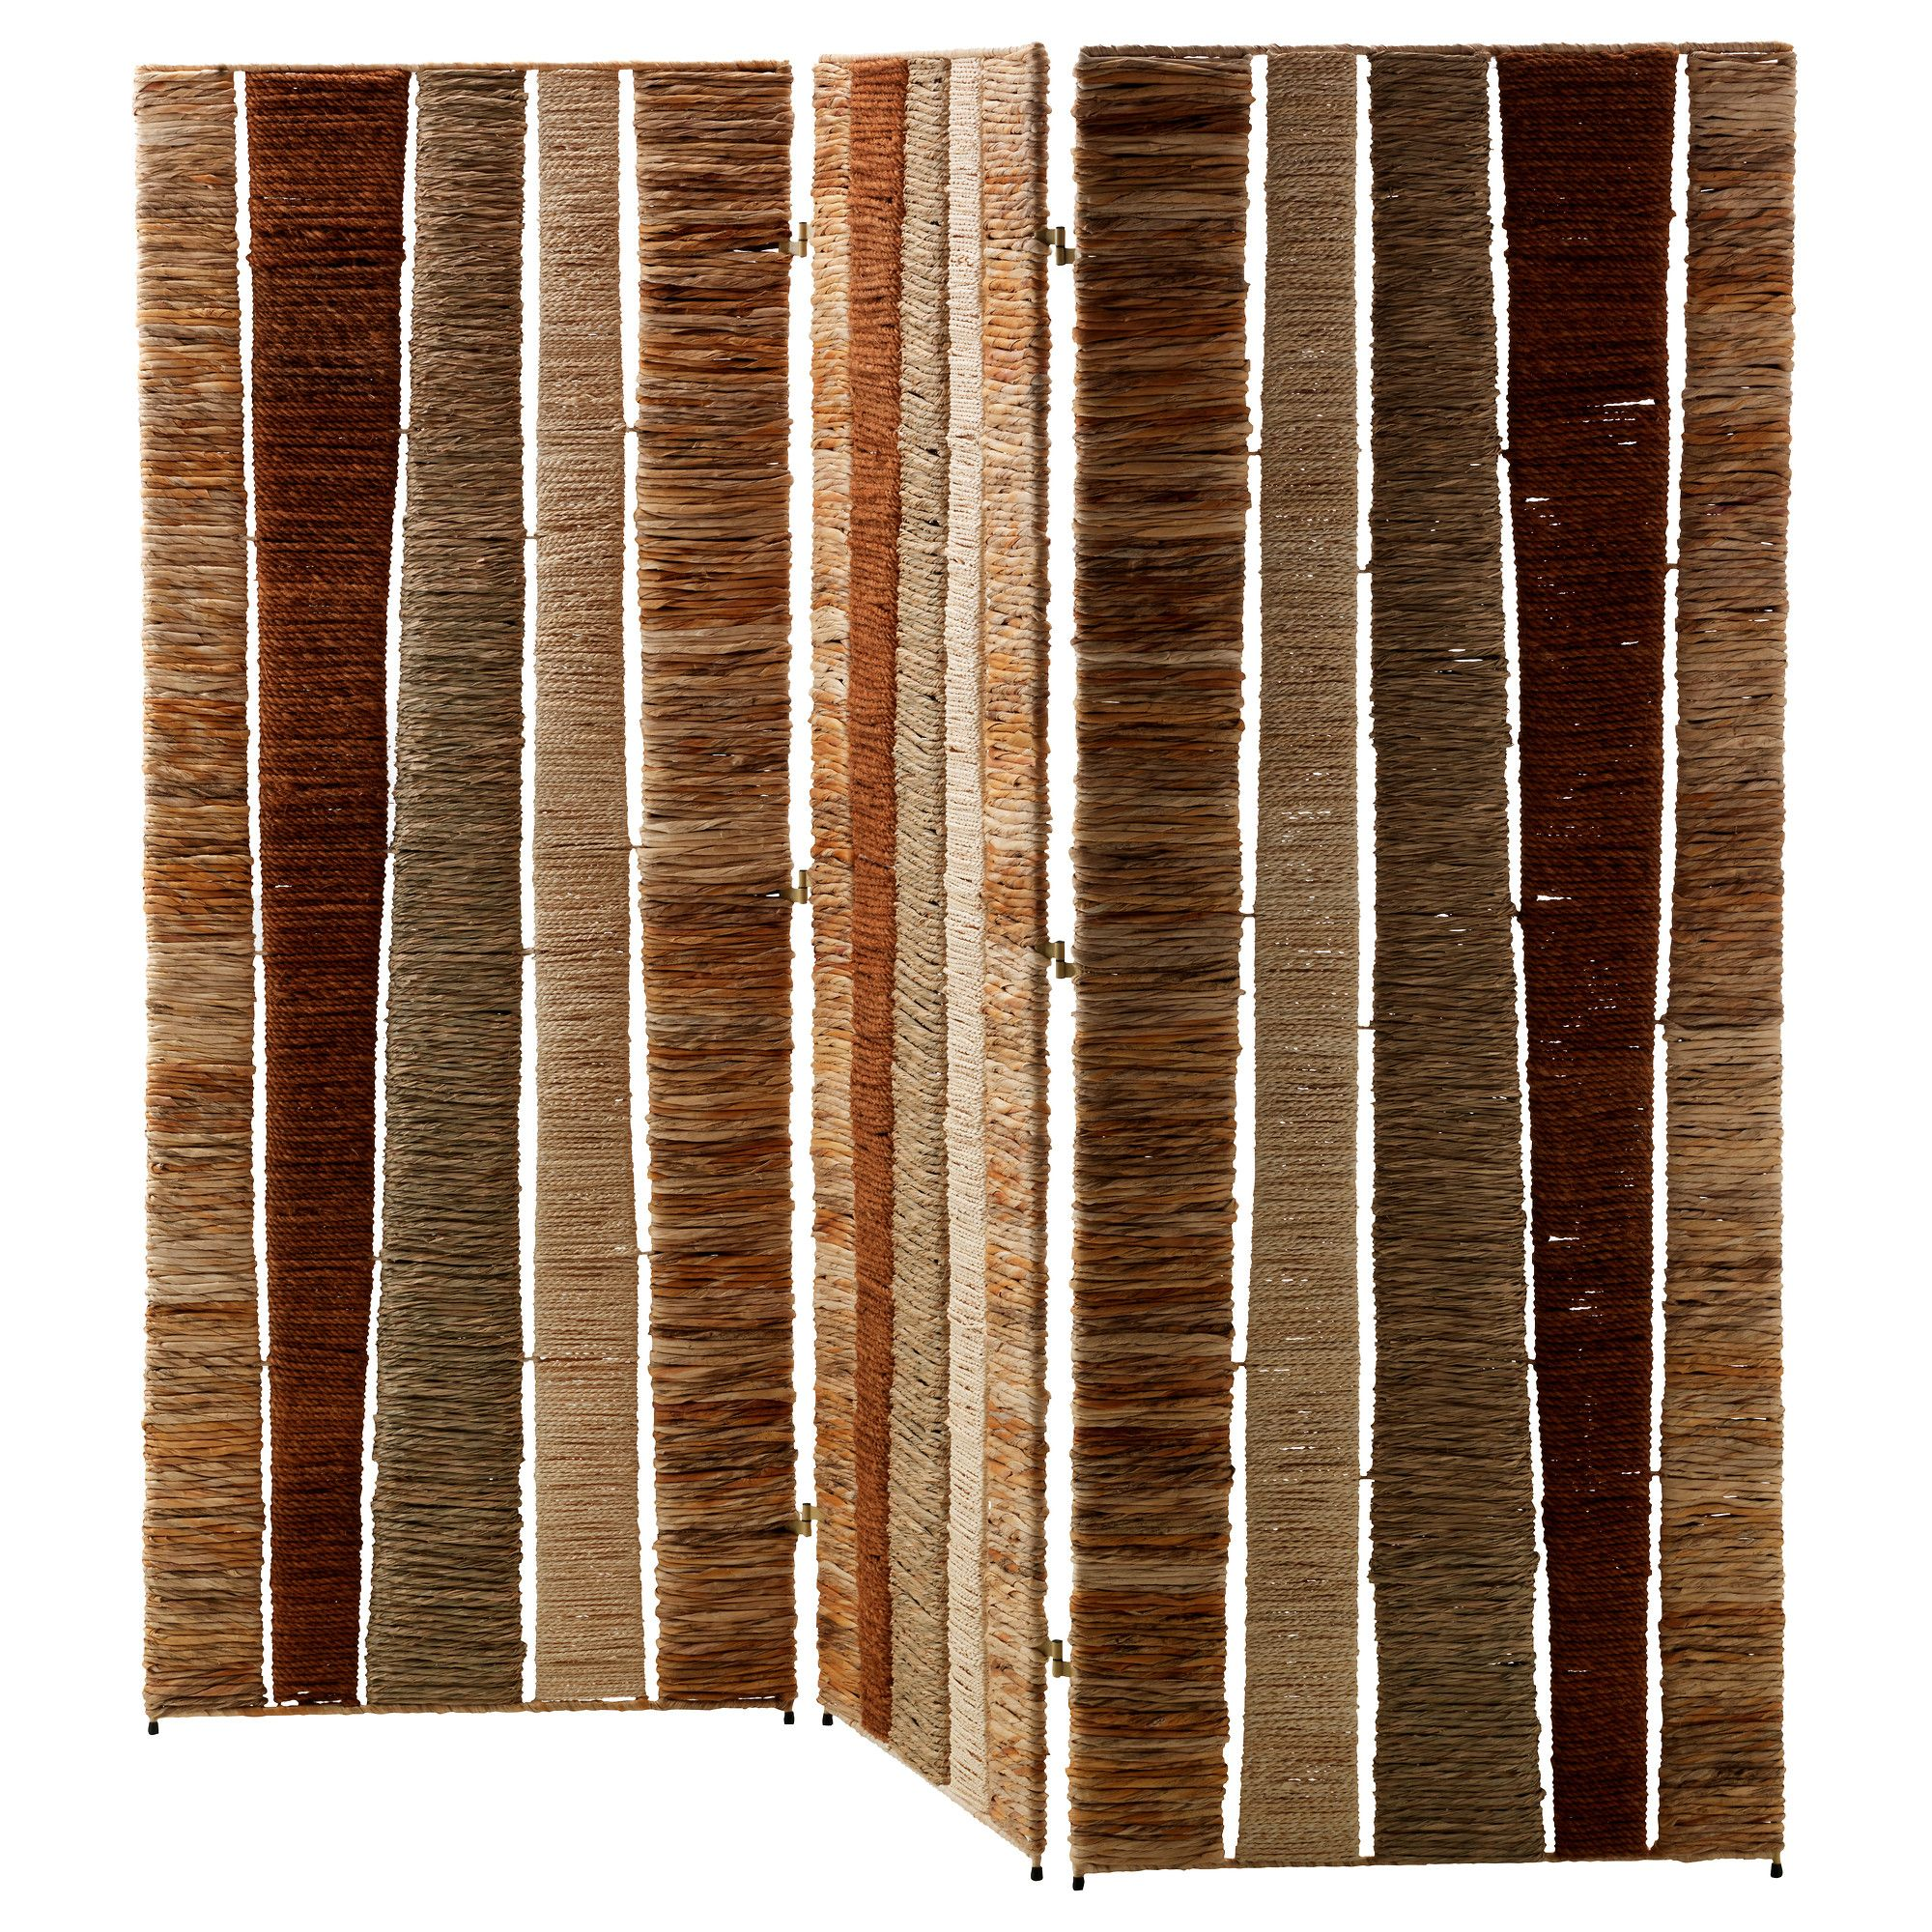 curtains hanging ikea dividers screen track astounding groovy sliding artistic stupendous zq divider room div curtain